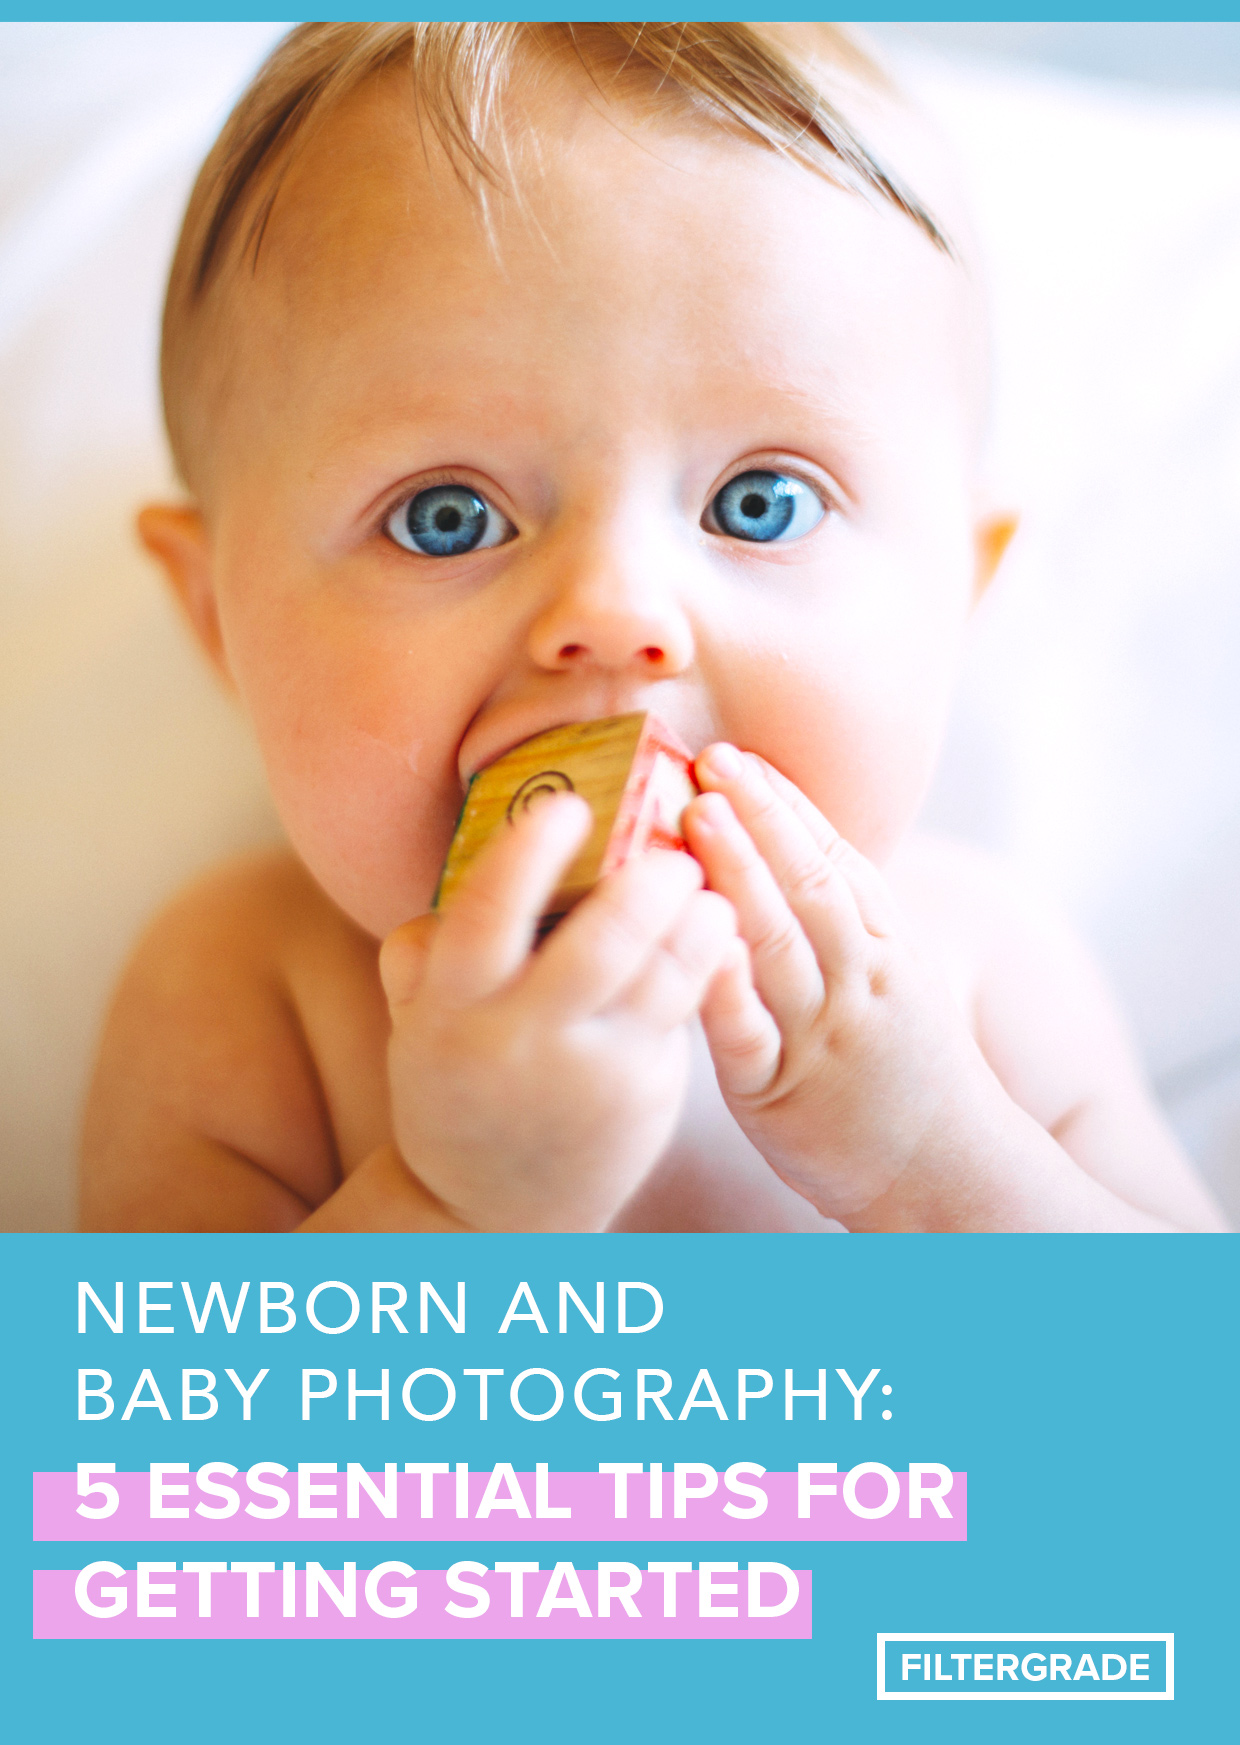 Essential newborn and baby photography tips for capturing those special moments